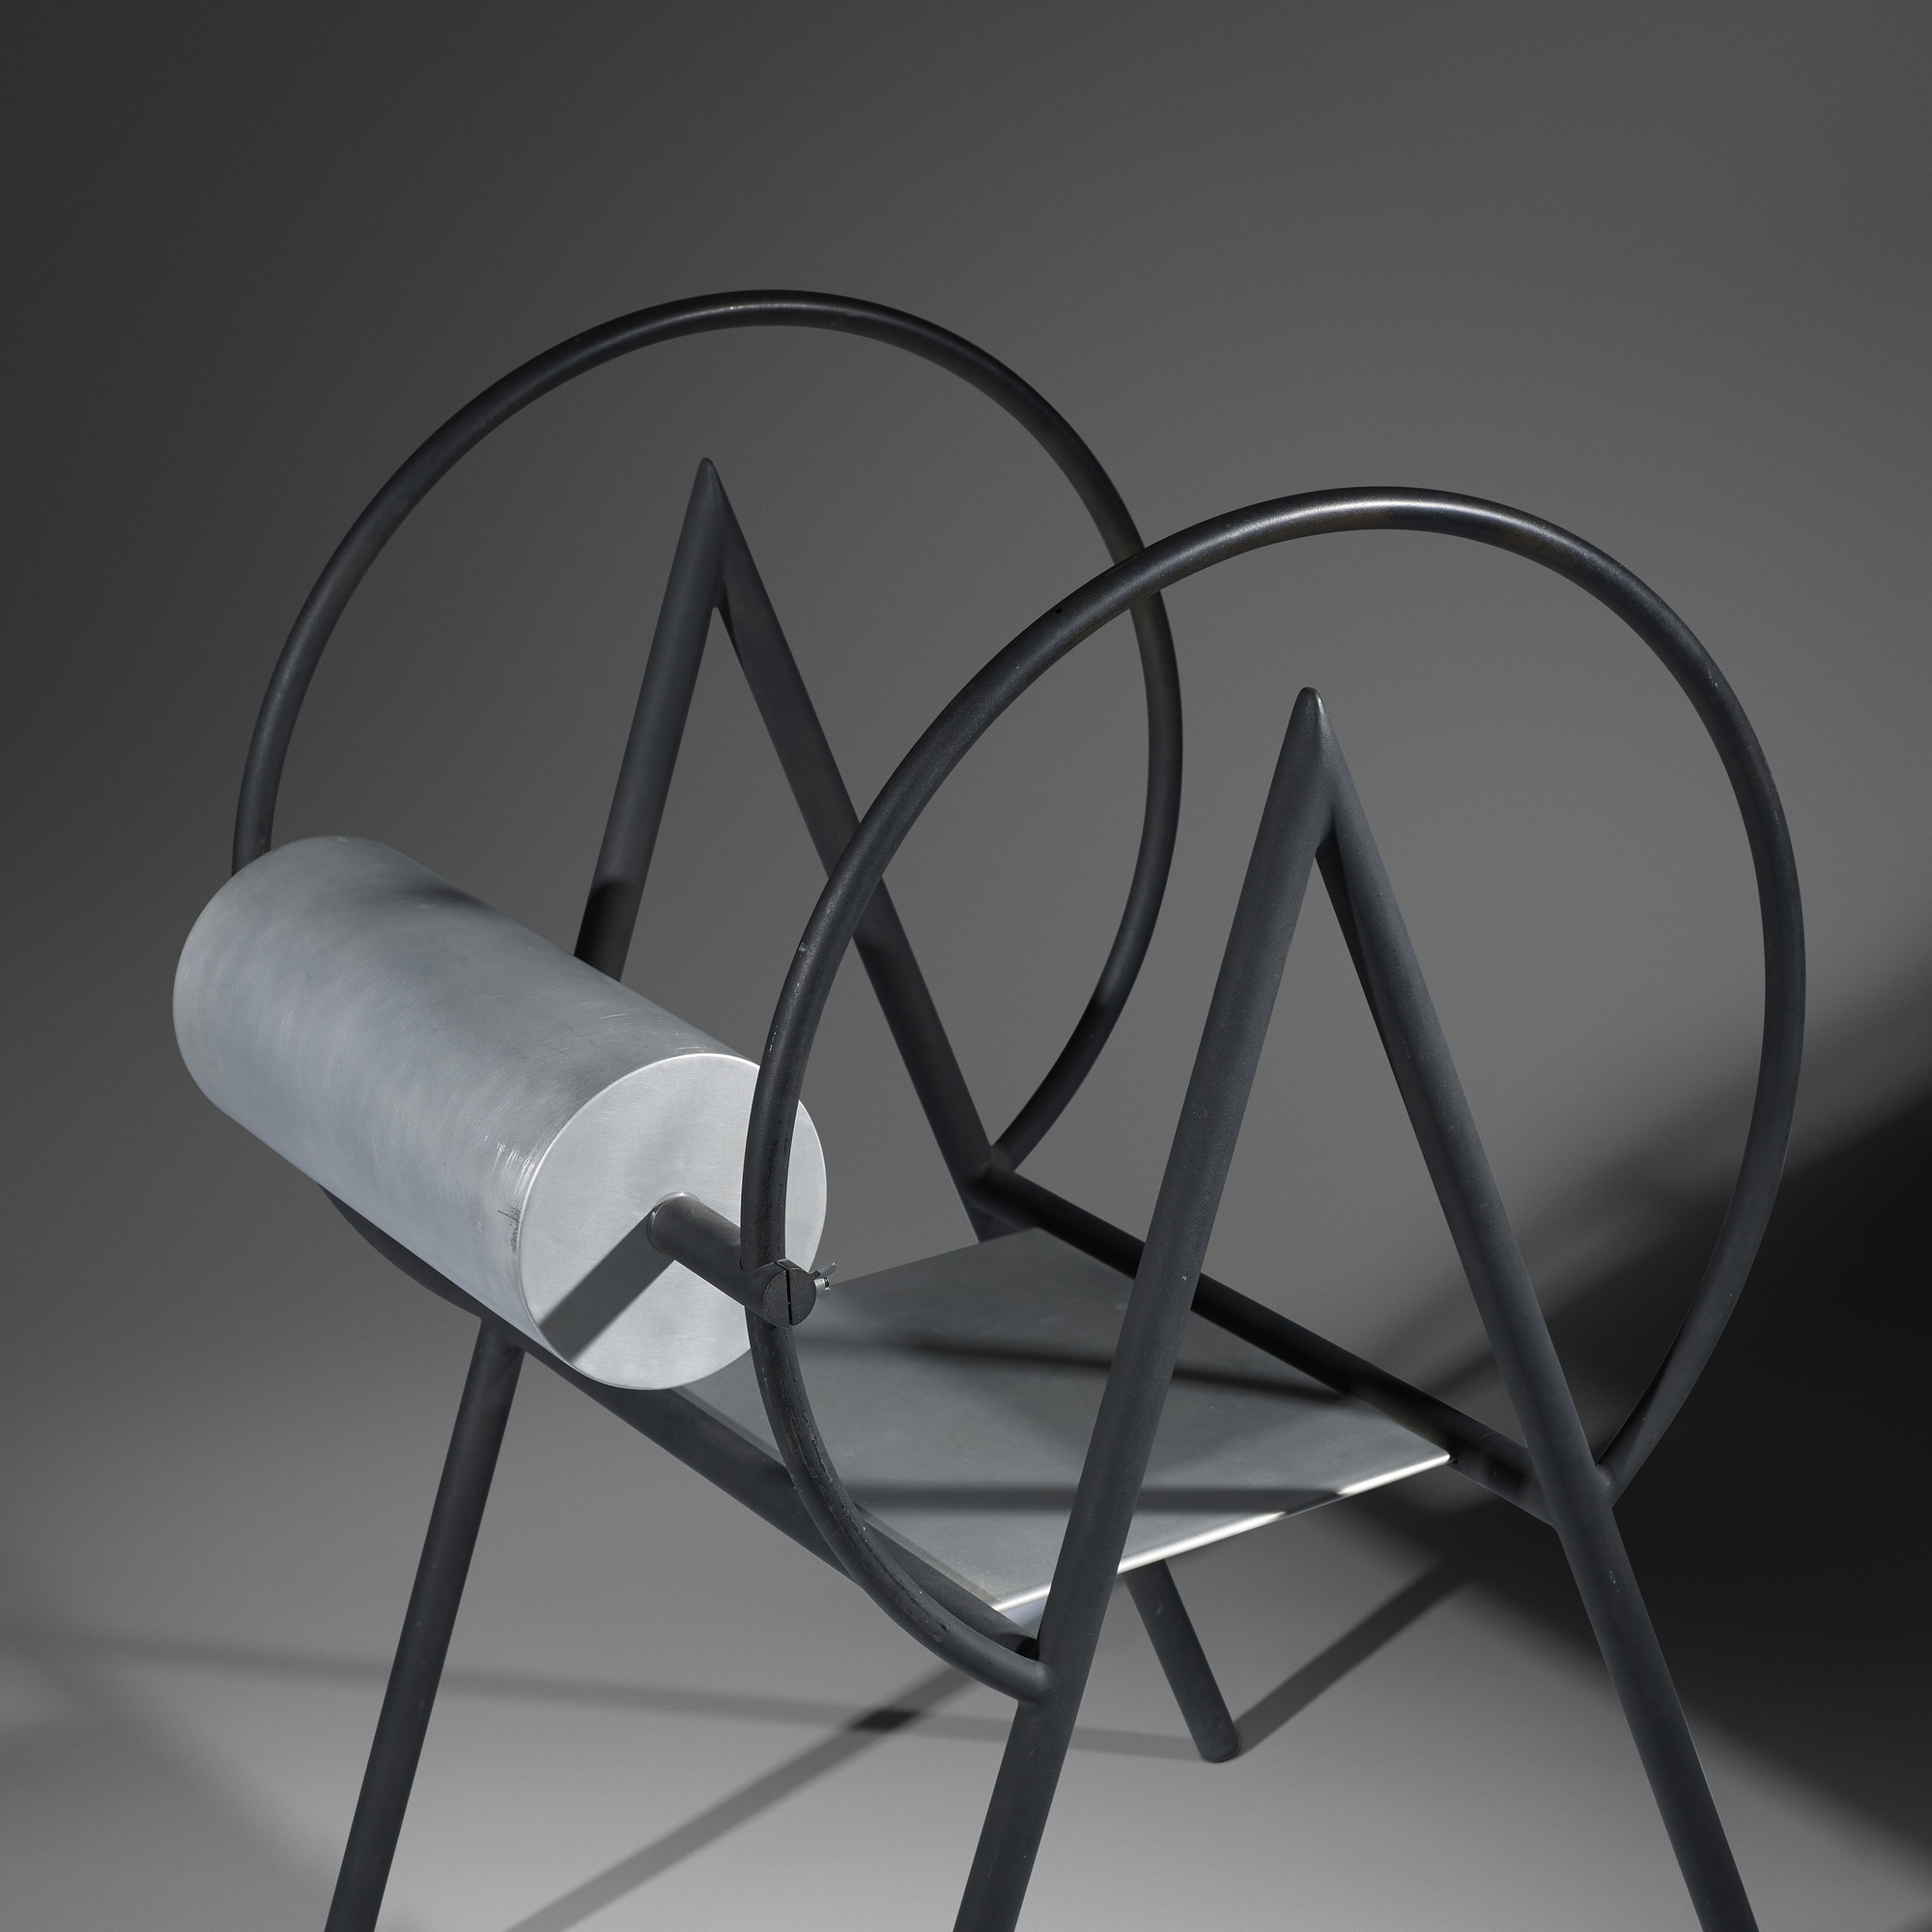 217 marc newson important and early chair for Chair design 2000